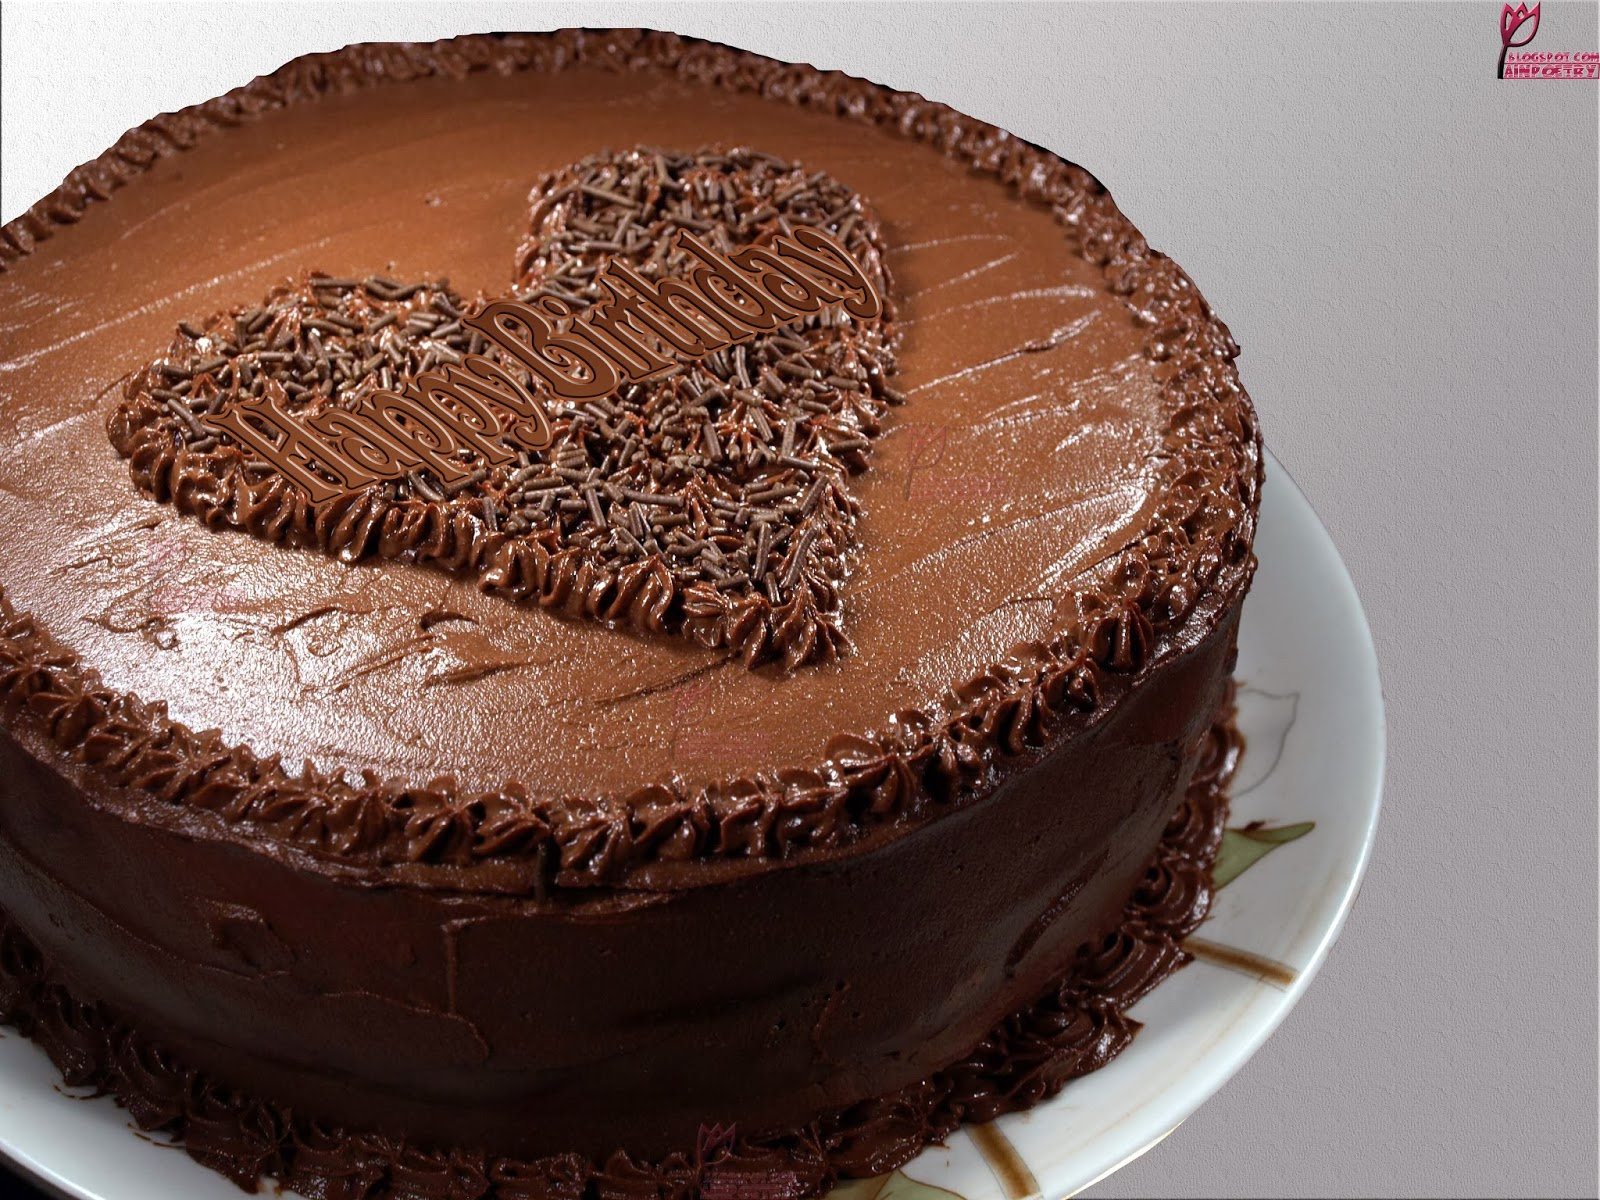 Happy-Birthday-Chocolate-Cake-Image-HD